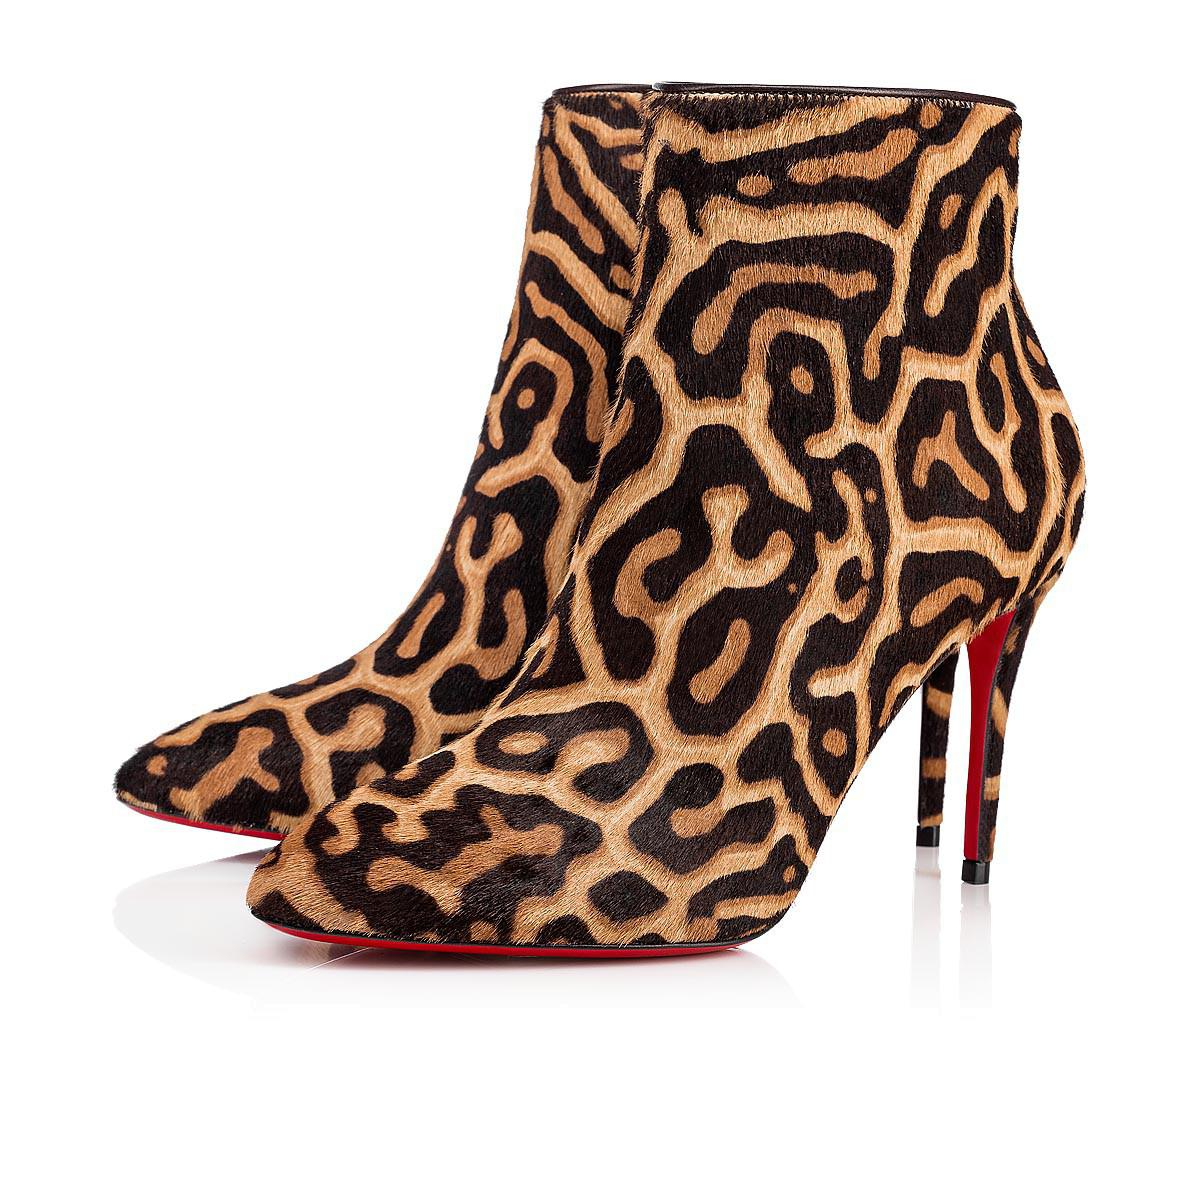 4f6ece00c891 Lyst - Christian Louboutin Eloise Booty in Brown